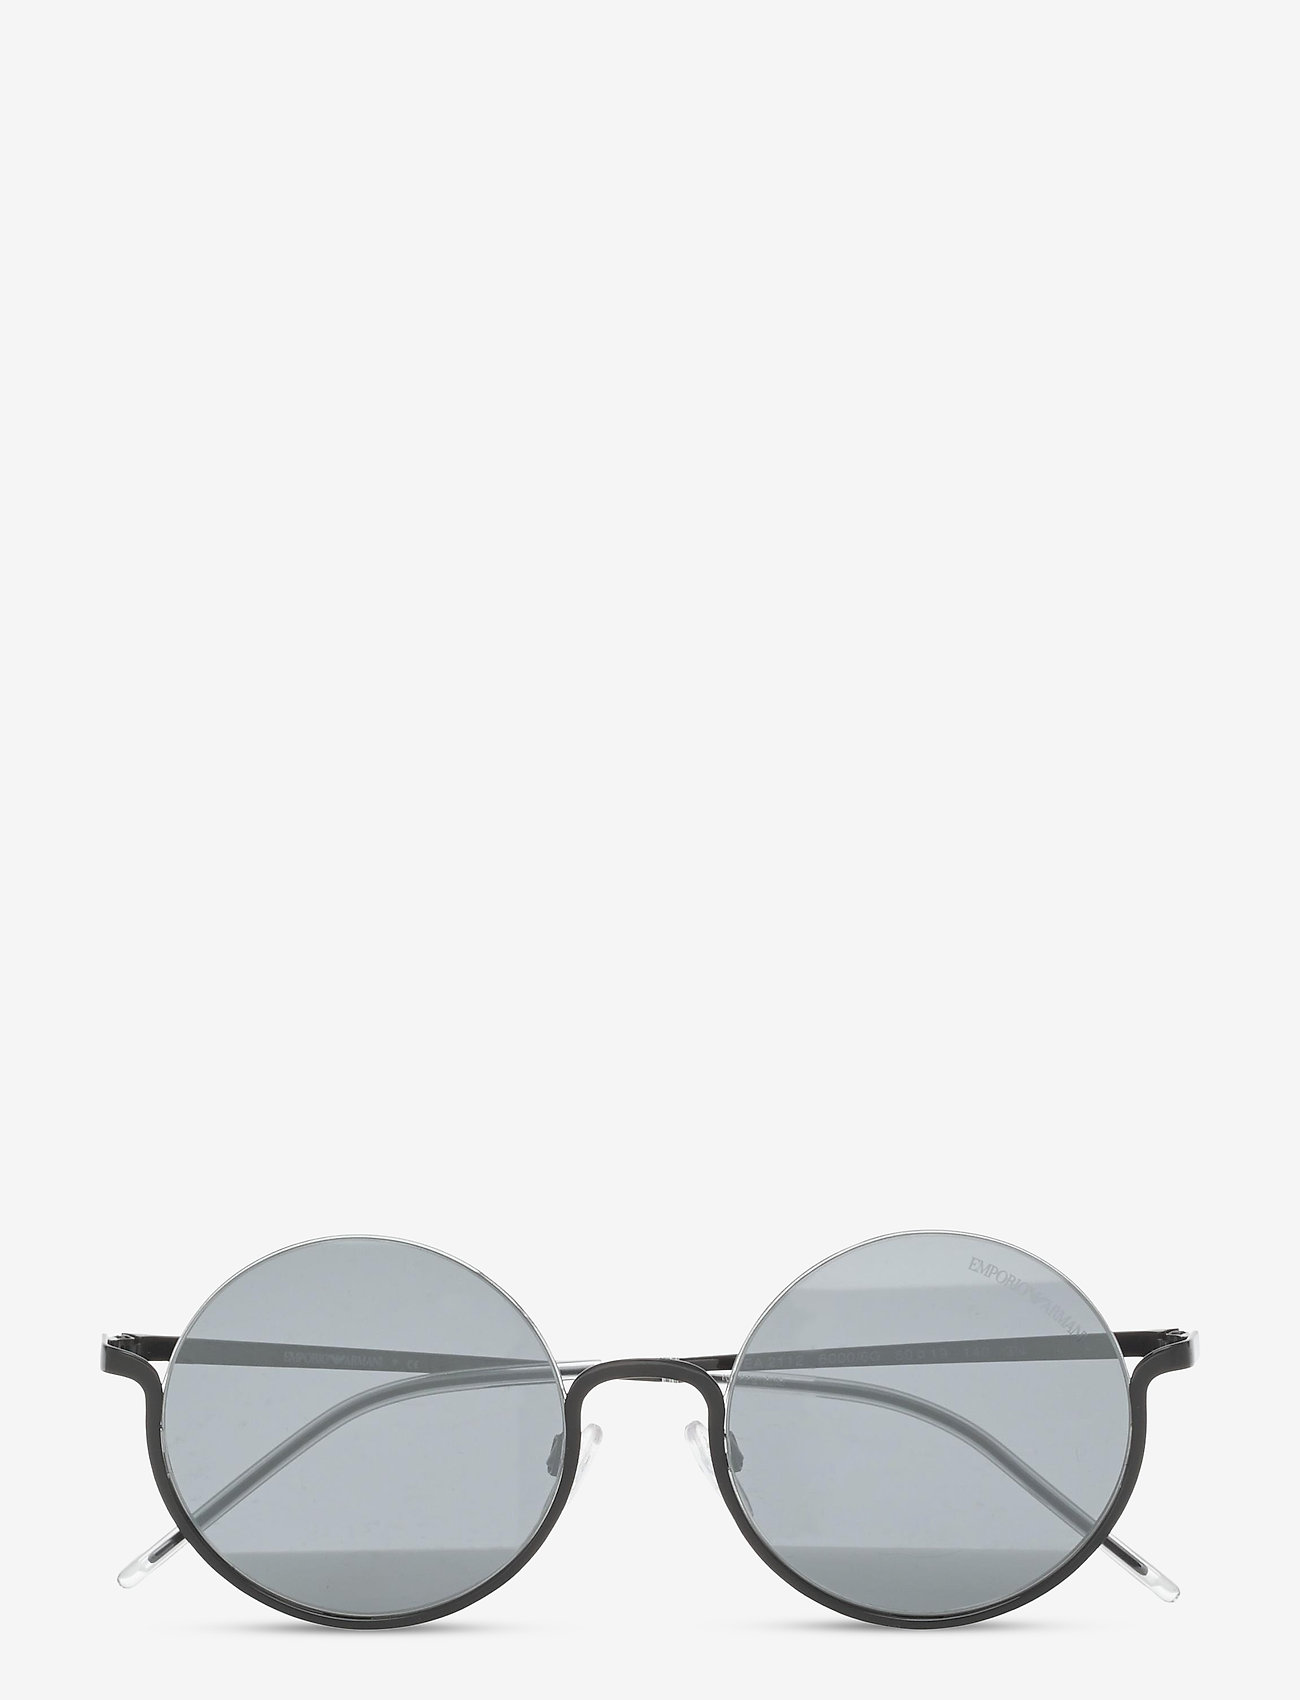 Emporio Armani Sunglasses - Sunglasses - rond model - mirror black - 0